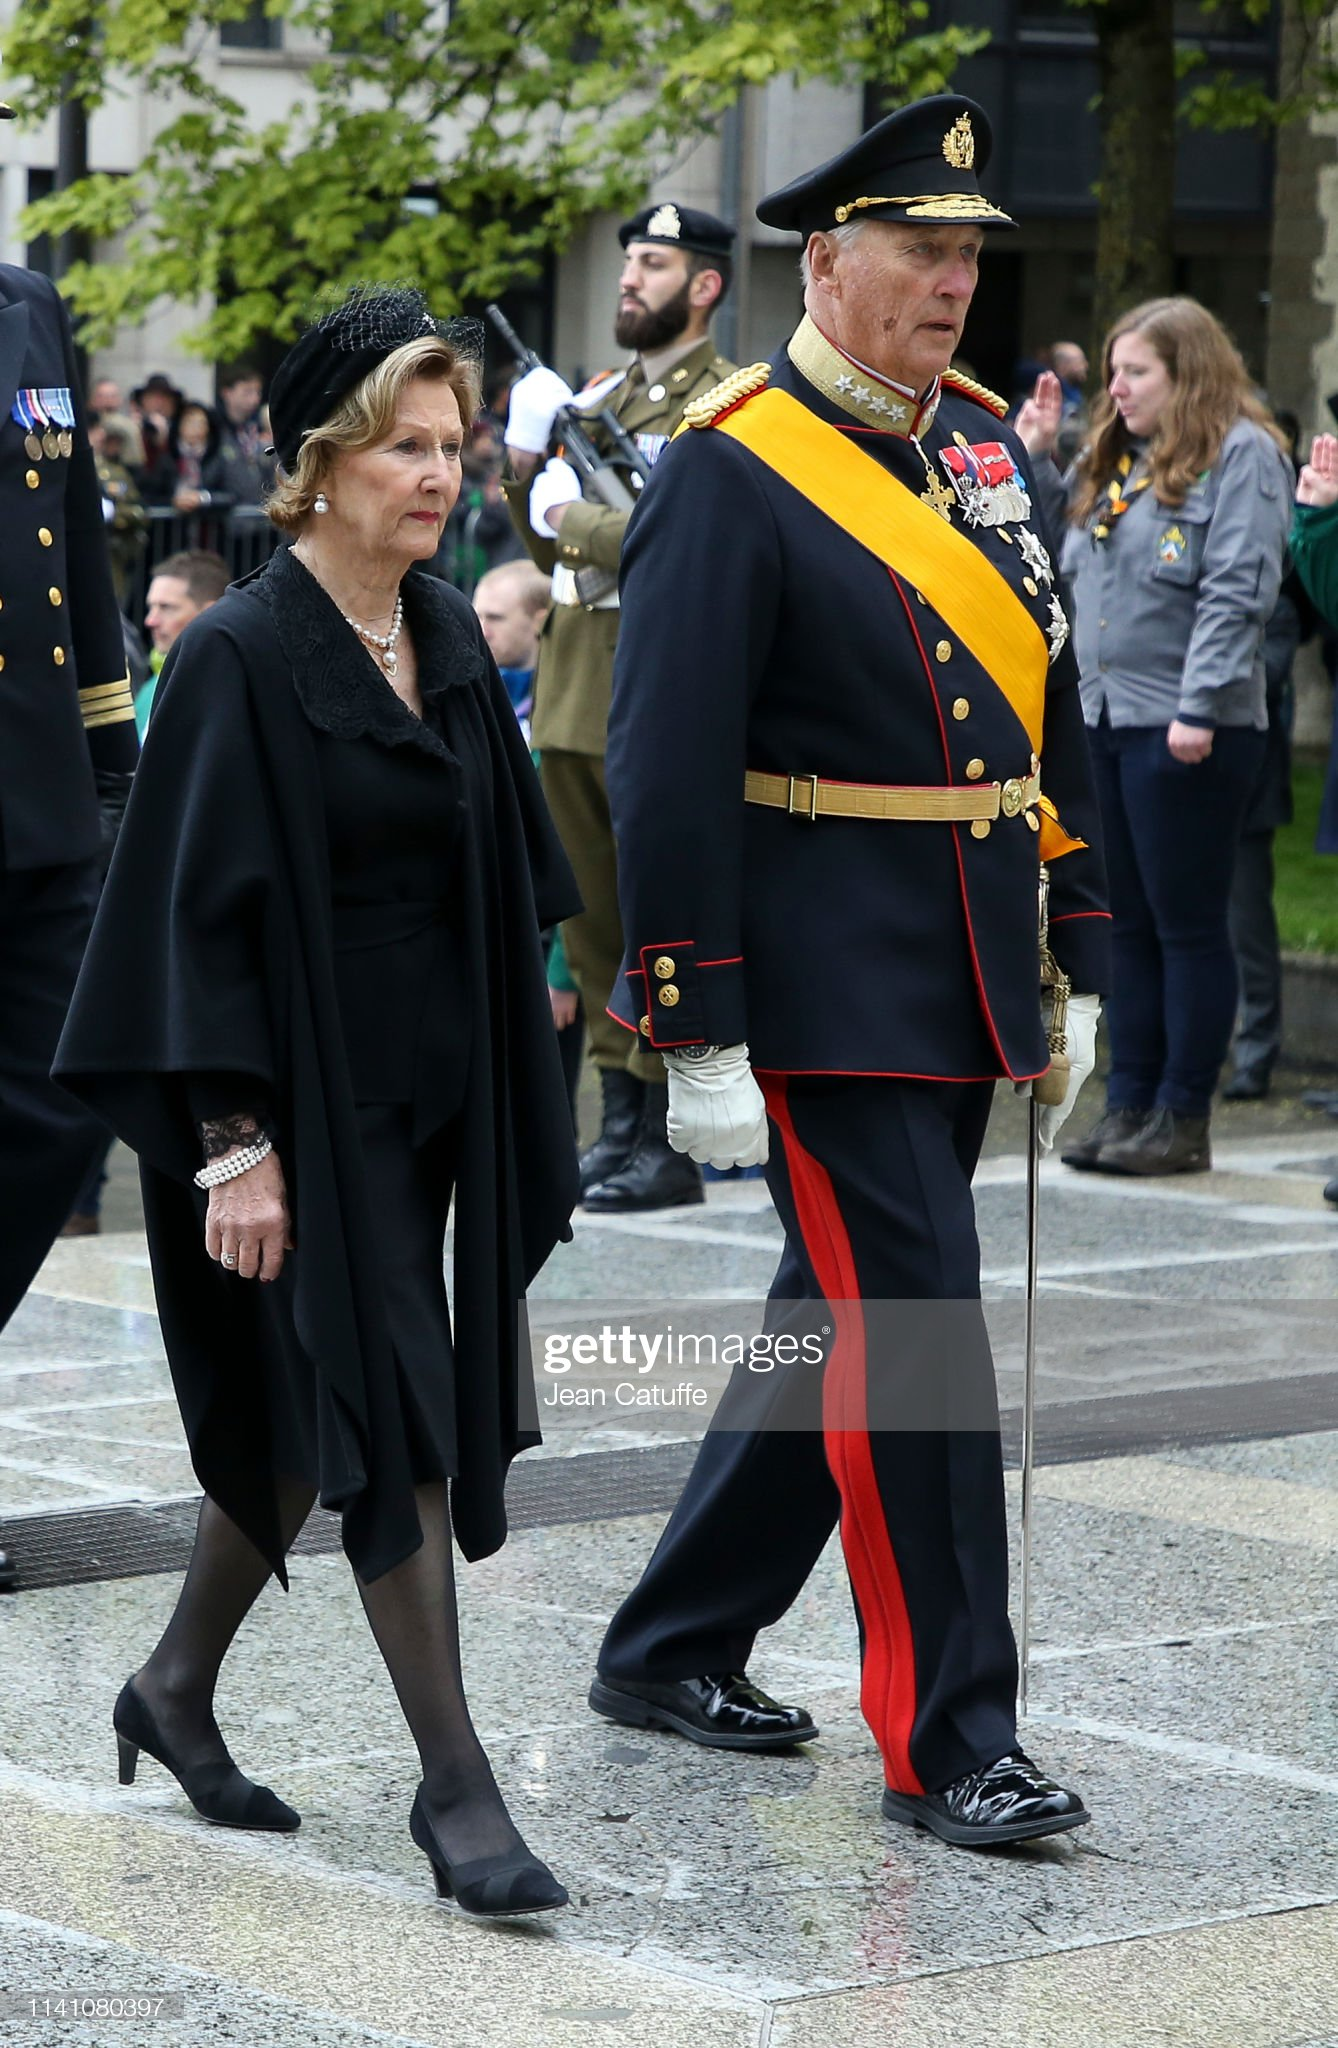 Похороны Великого Герцога Жана https://media.gettyimages.com/photos/king-harald-v-of-norway-and-queen-sonja-of-norway-arrive-for-the-of-picture-id1141080397?s=2048x2048